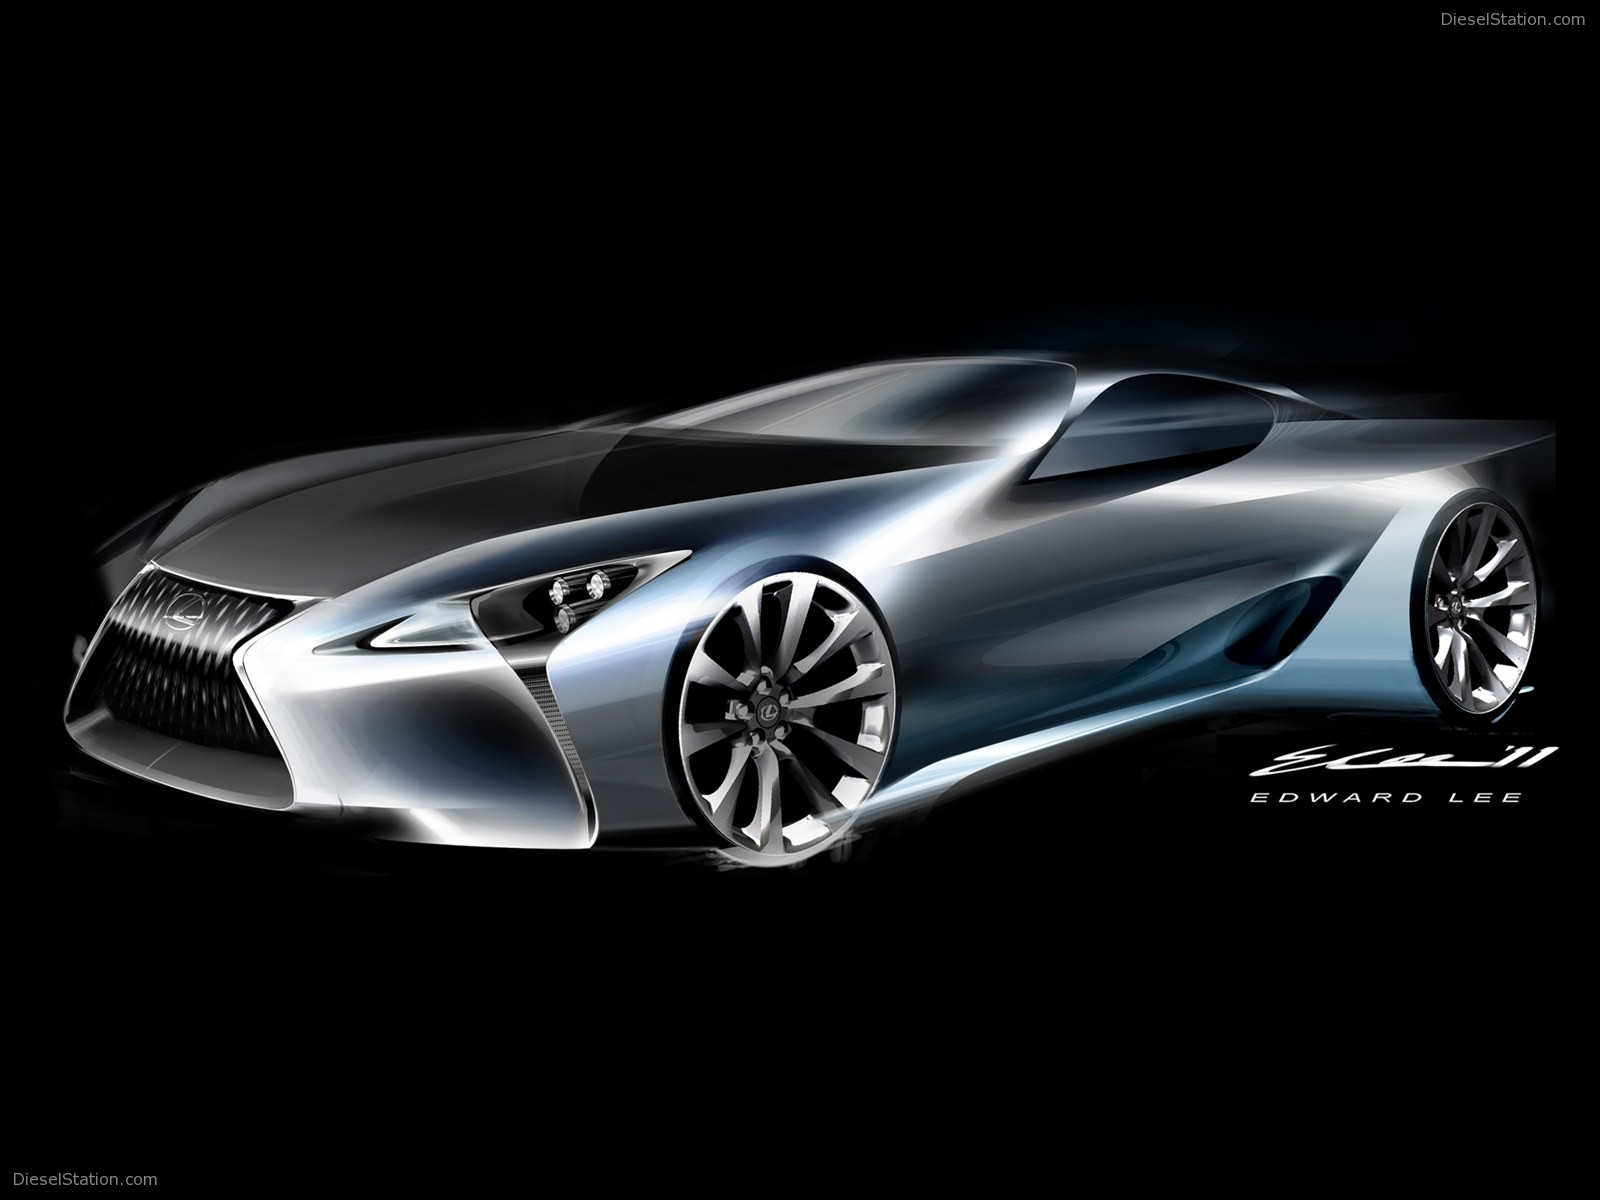 2000 Lexus Sport Coupe Concept photo - 3